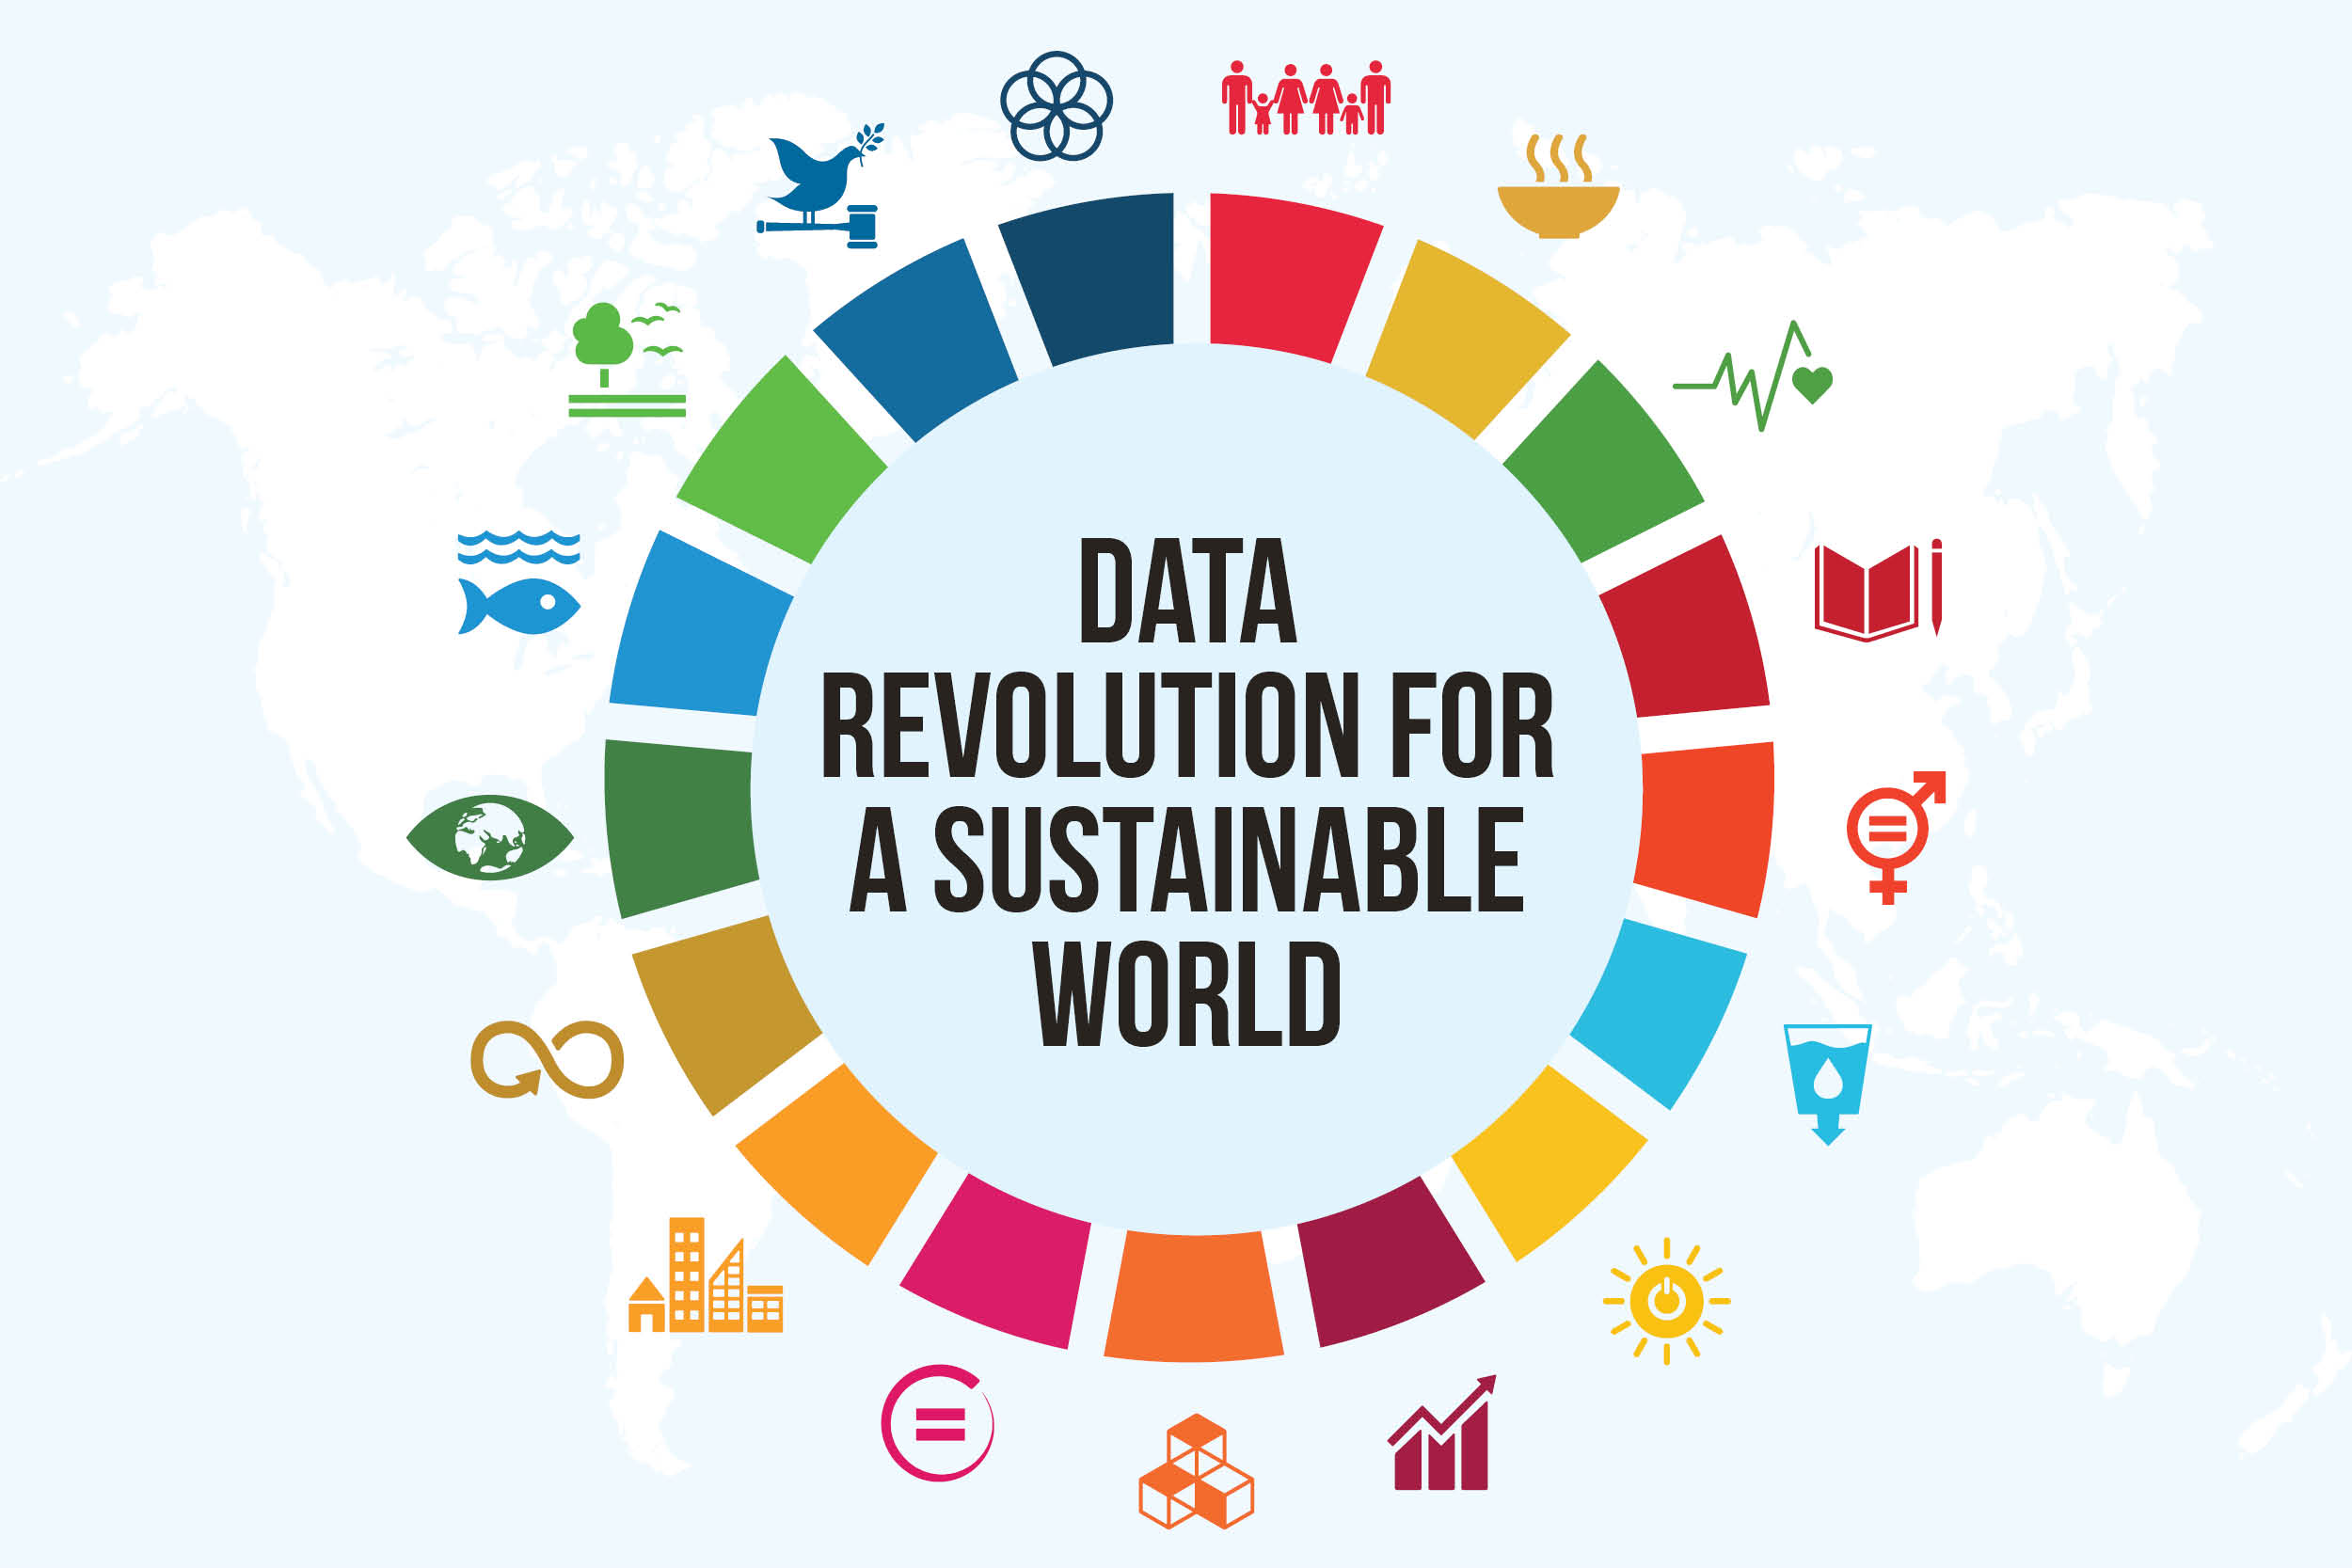 Data revolution for Sustainable Development